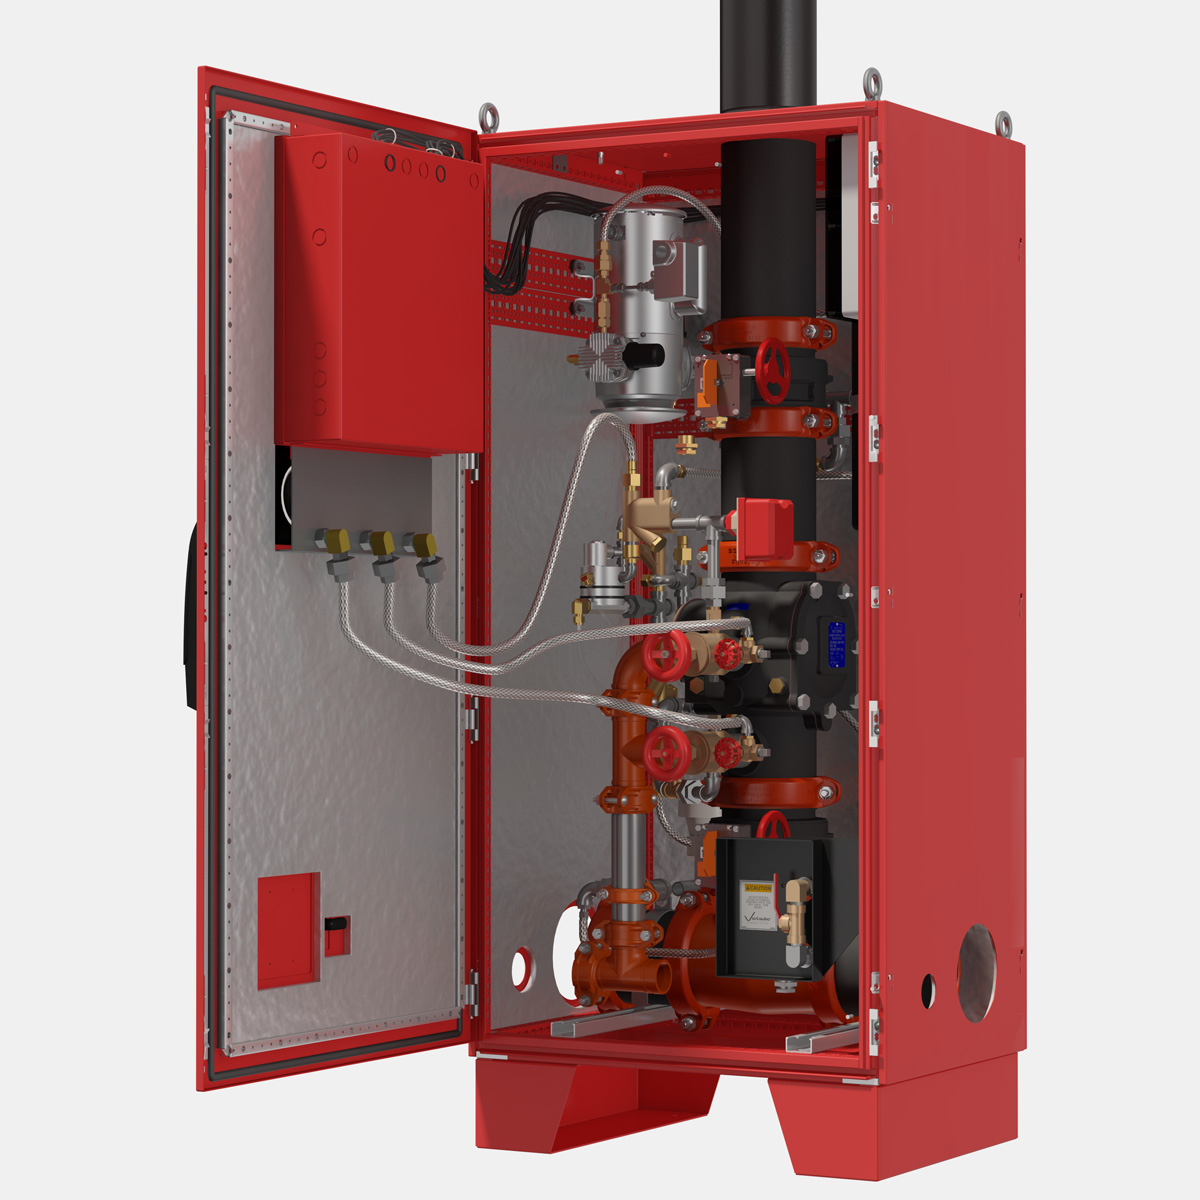 Victaulic Announces New Firelock Series 745 Fire Pac